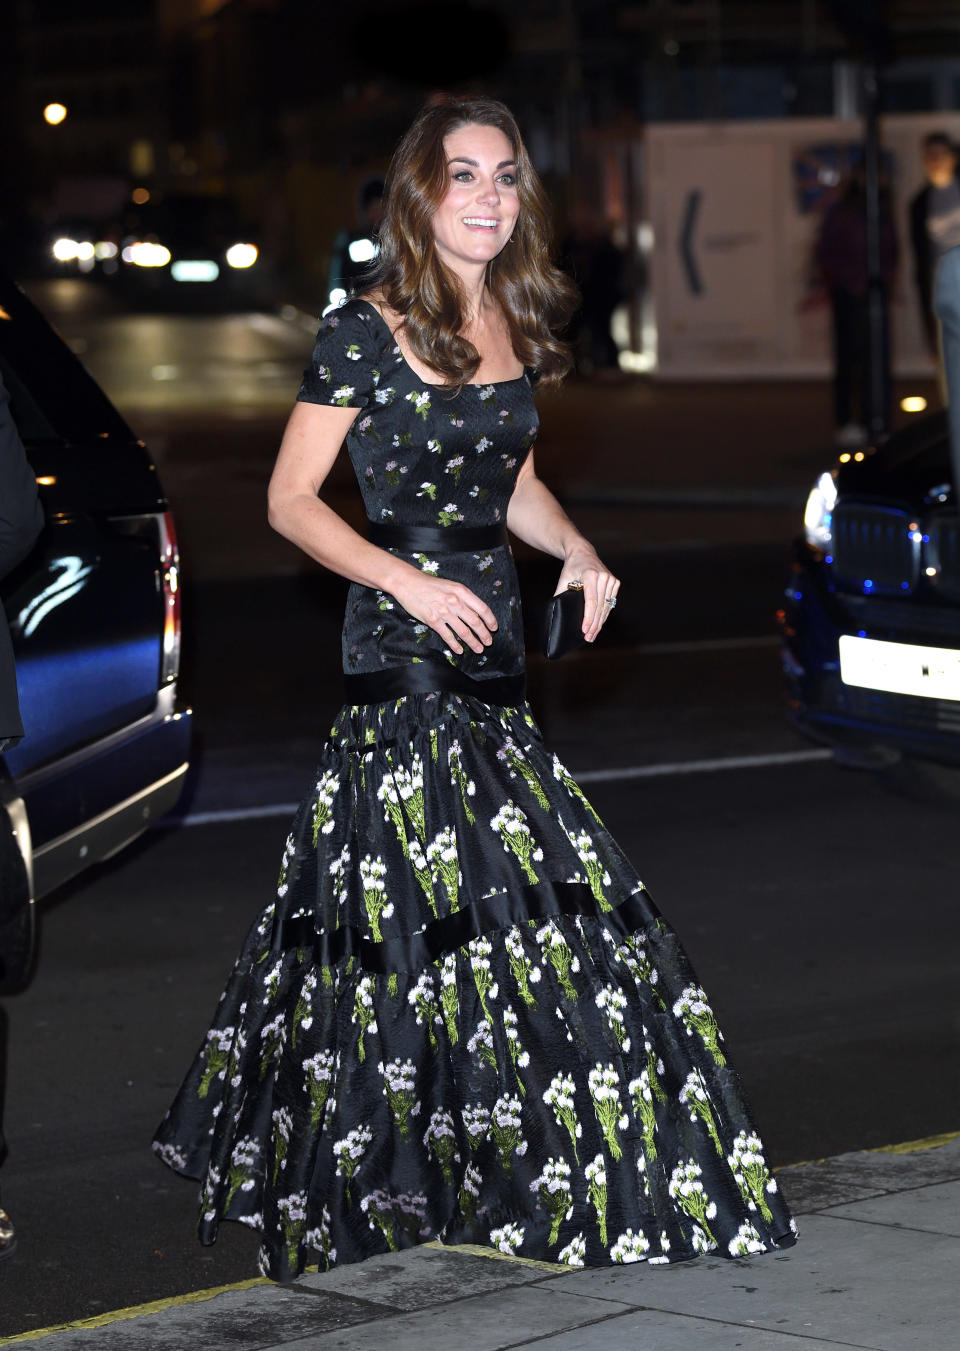 The Duchess of Cambridge rewore an Alexander McQueen gown at last night's gala. [Photo: Getty]